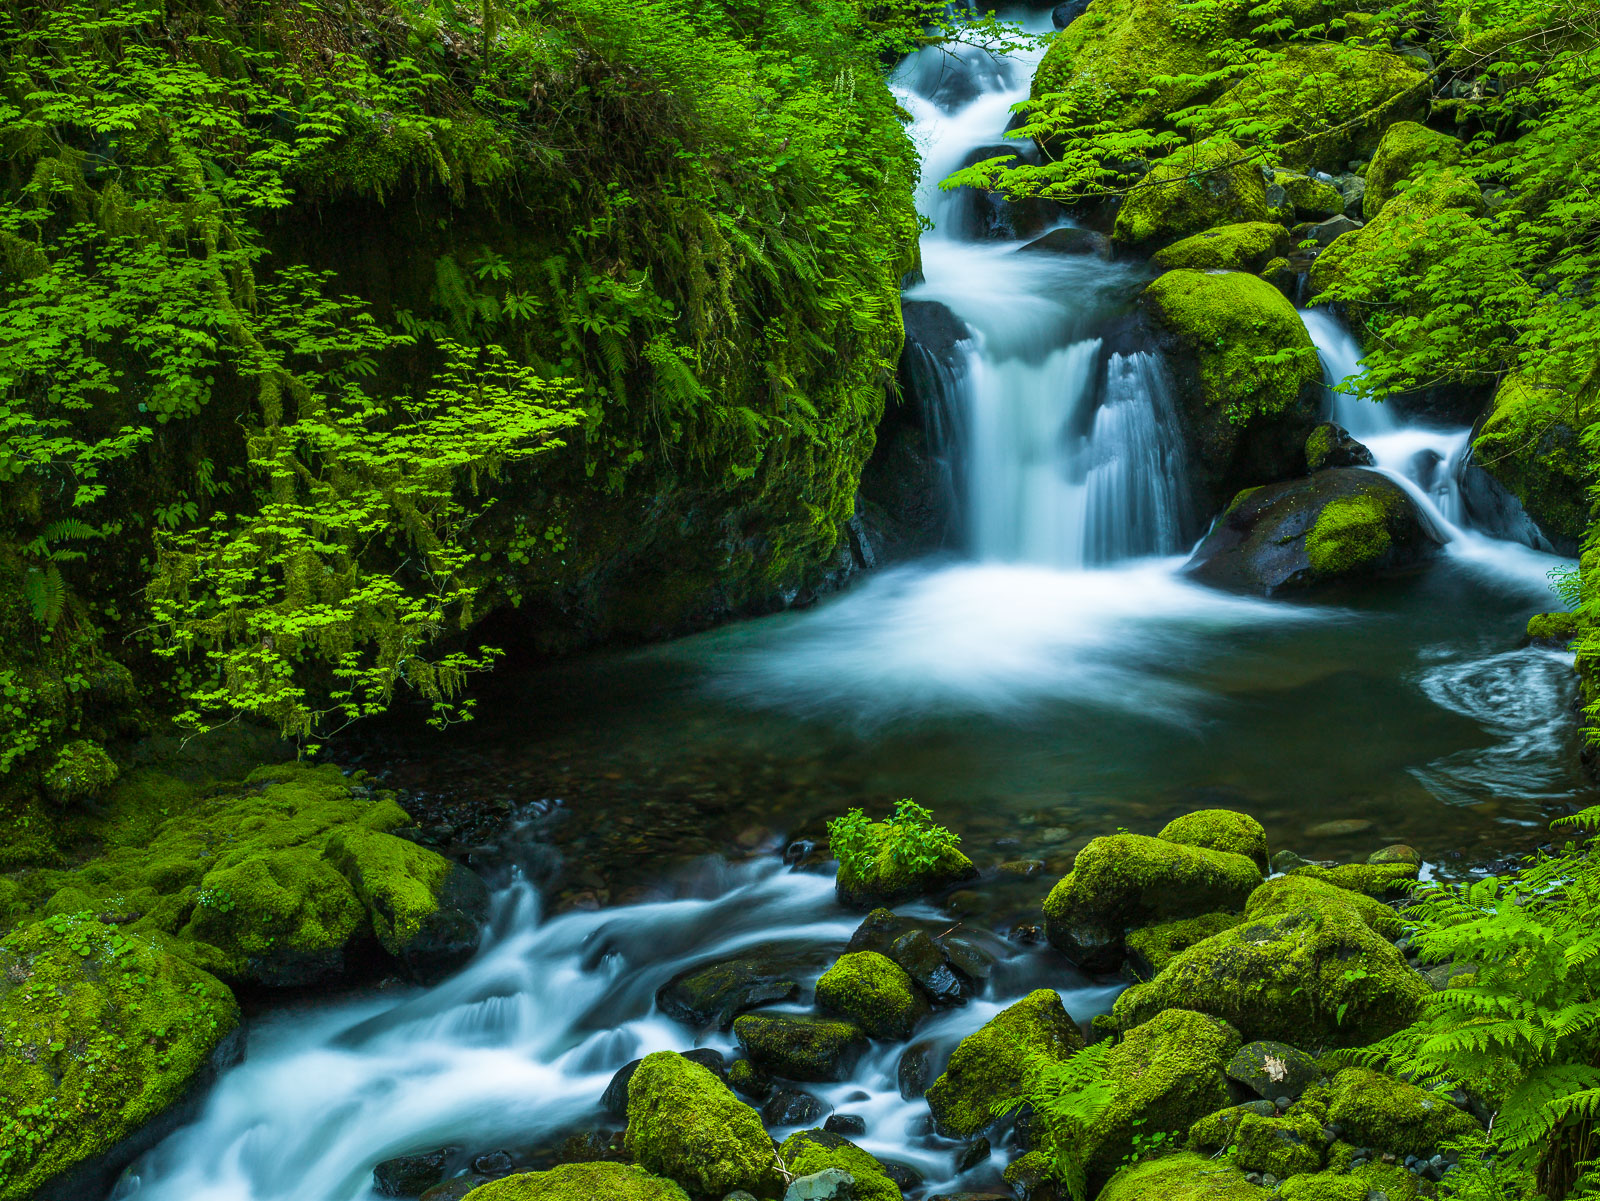 Passing Through,Columbia Gorge, Oregon,Spring,Stream,green,horizontal,lush,Water,Spring, photo